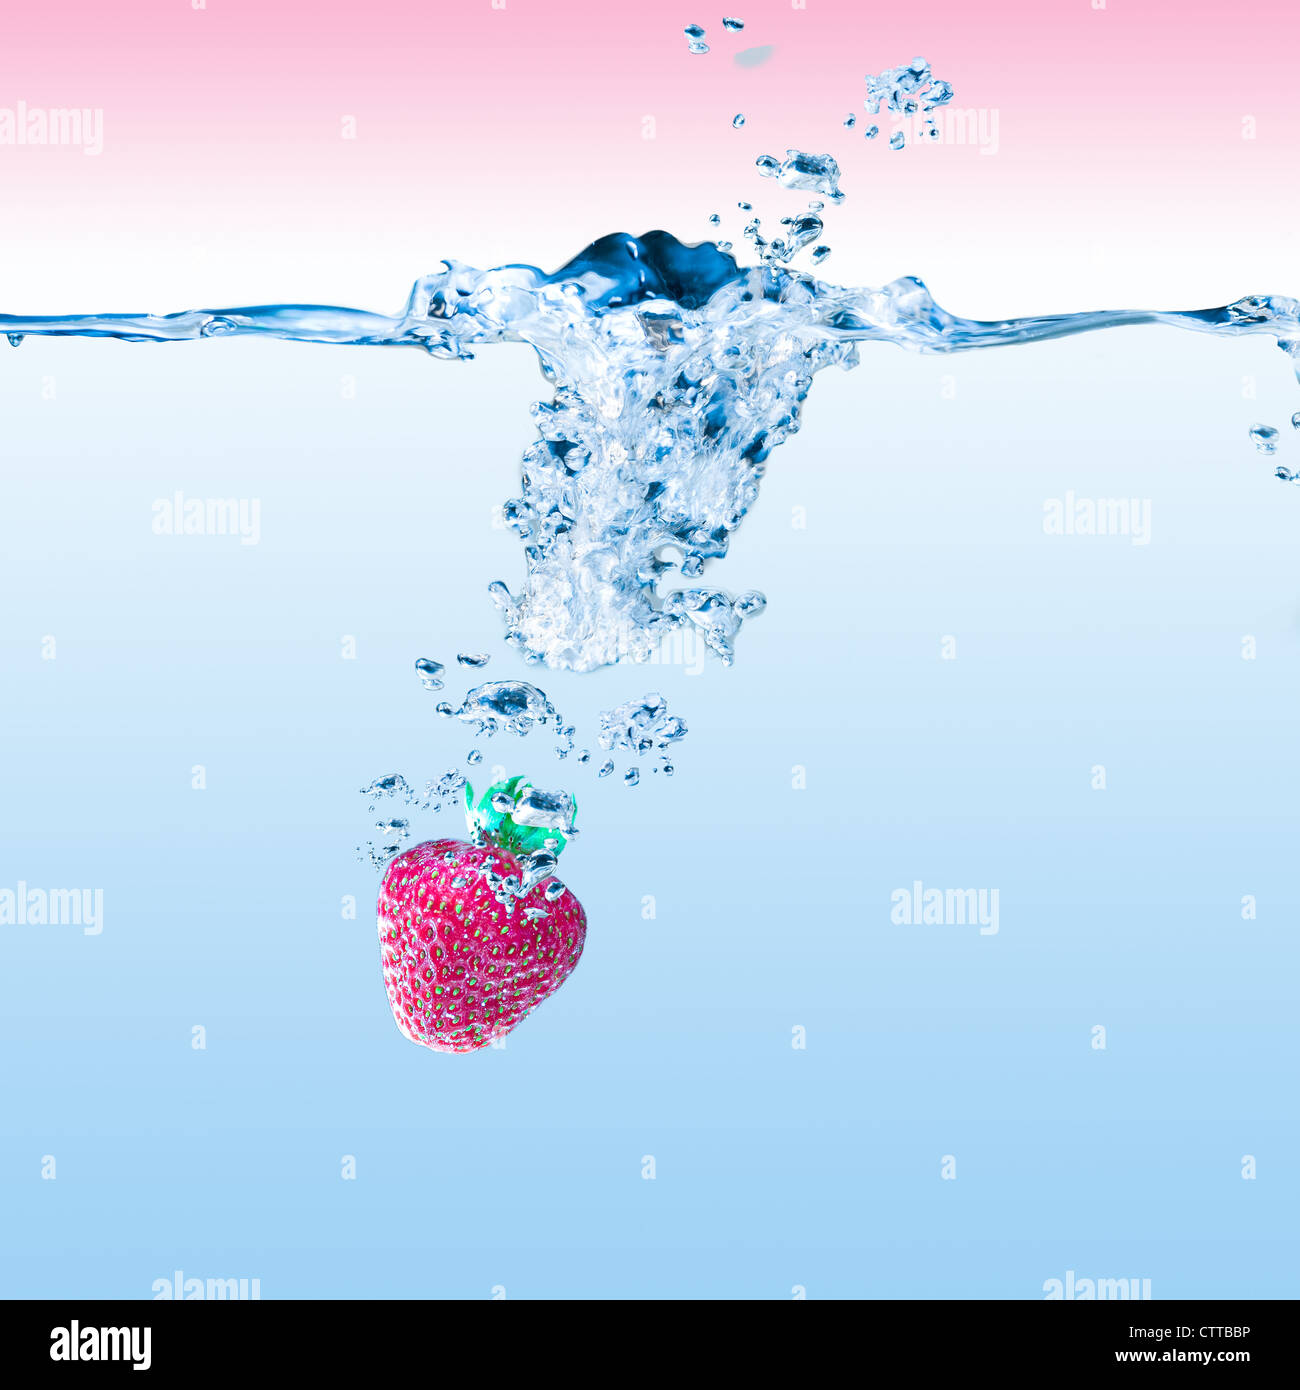 close-up shot of a strawberry in the splashing water - Stock Image